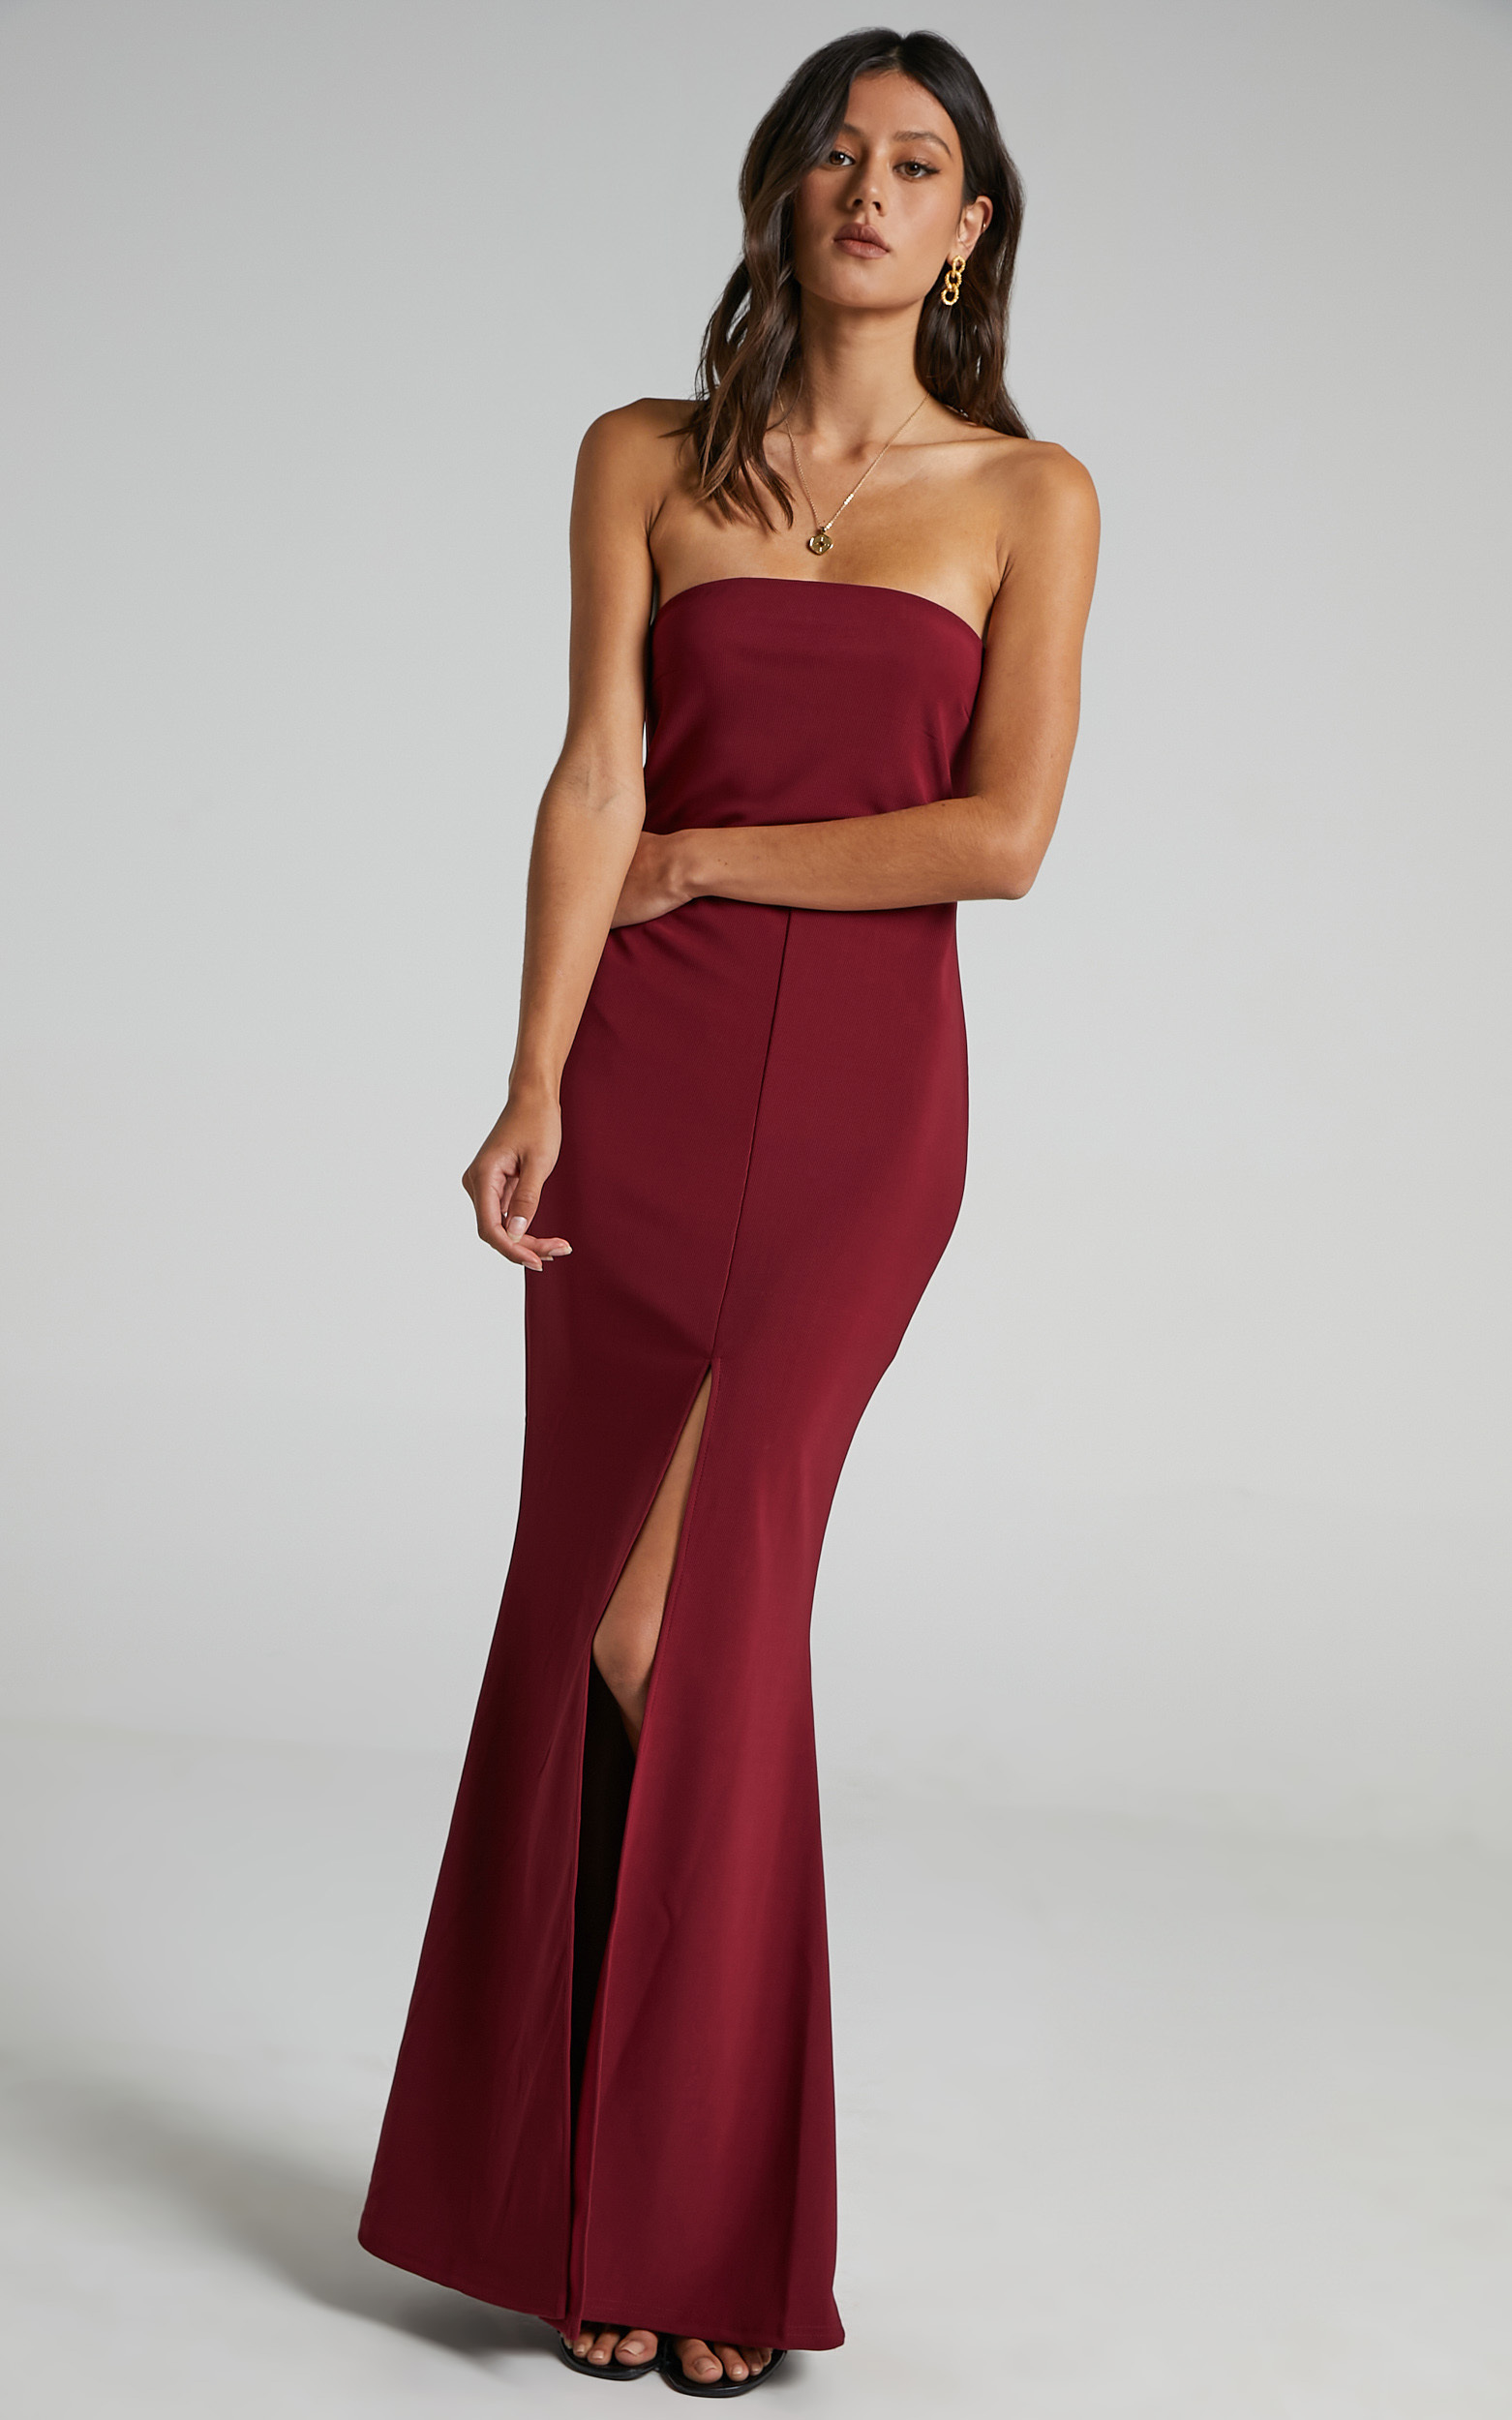 One More Kiss Maxi Dress in Wine - 20, WNE2, hi-res image number null